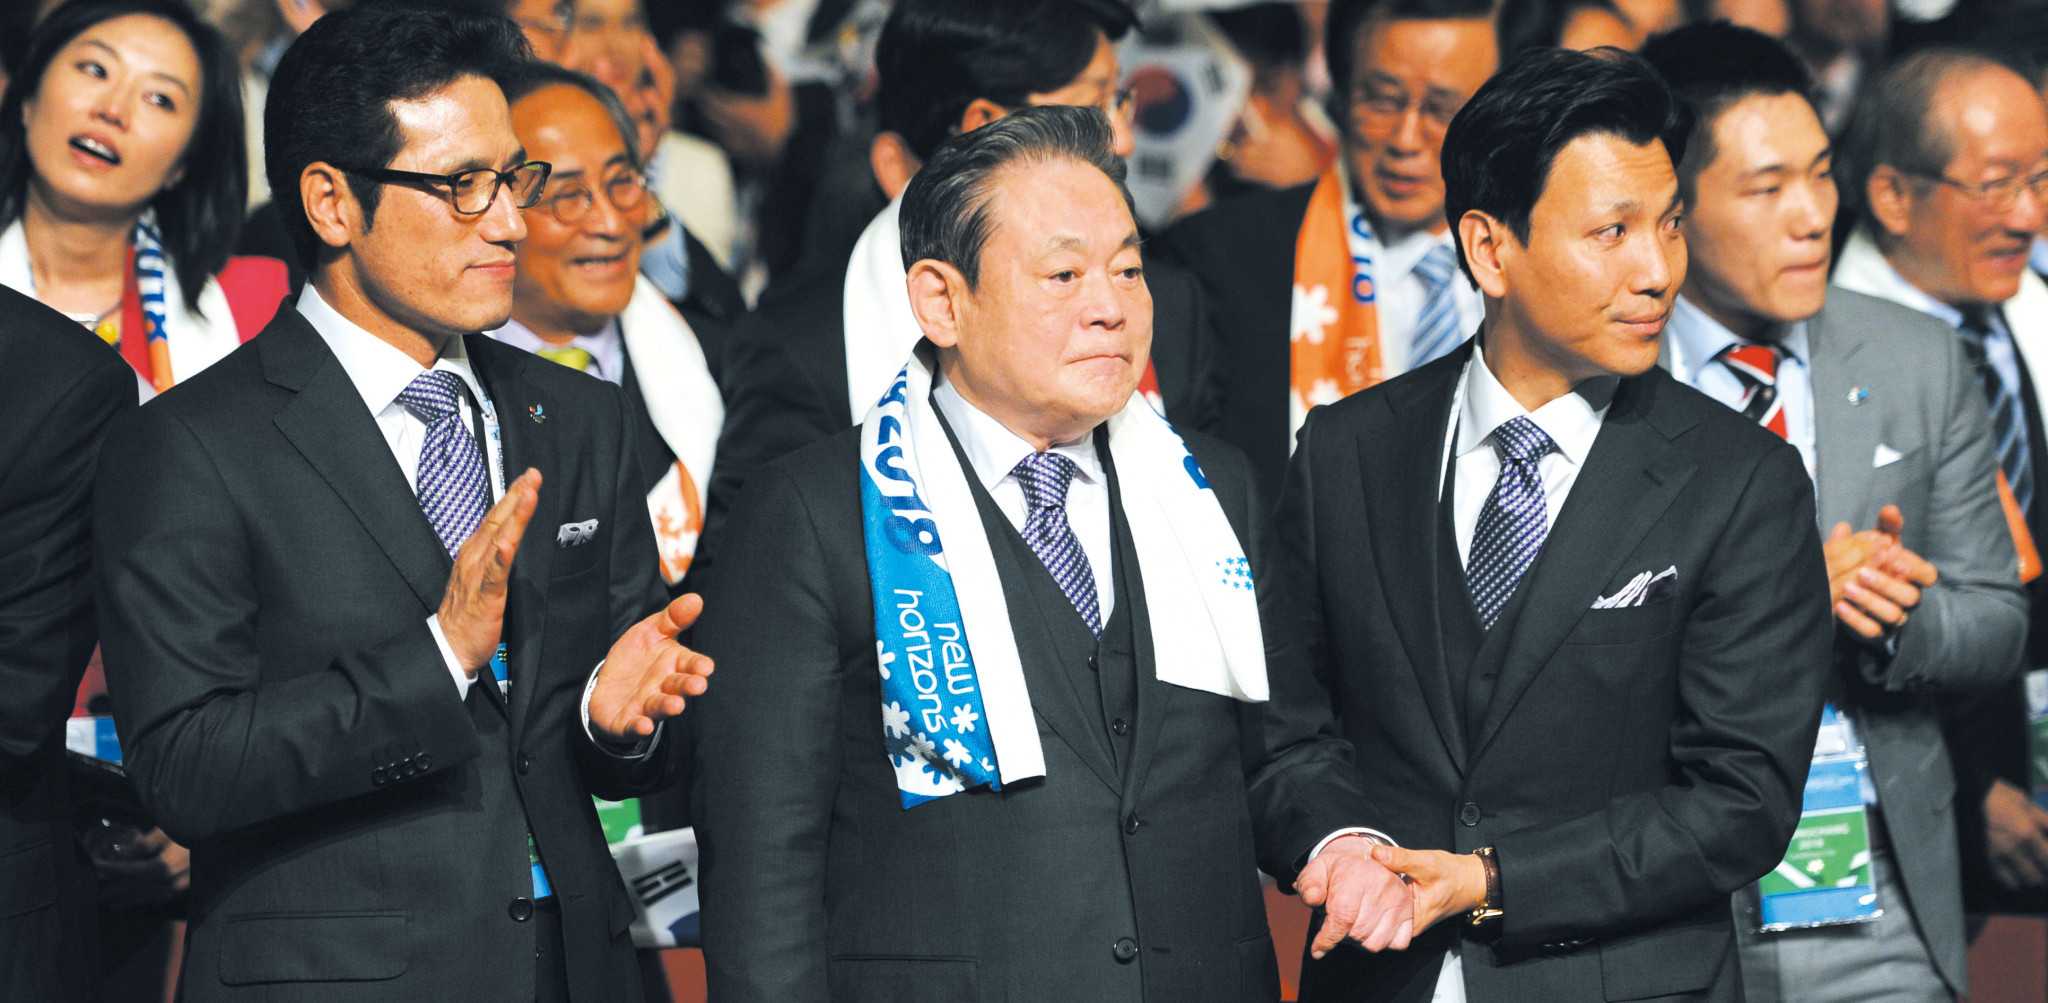 Samsung chairman Lee Kun-hee, centre, played a key role in Pyeongchang's successful bid for the 2018 Winter Olympic and Paralympics after receiving a Presidential pardon allowing him to be reinstated as an IOC member ©Getty Images